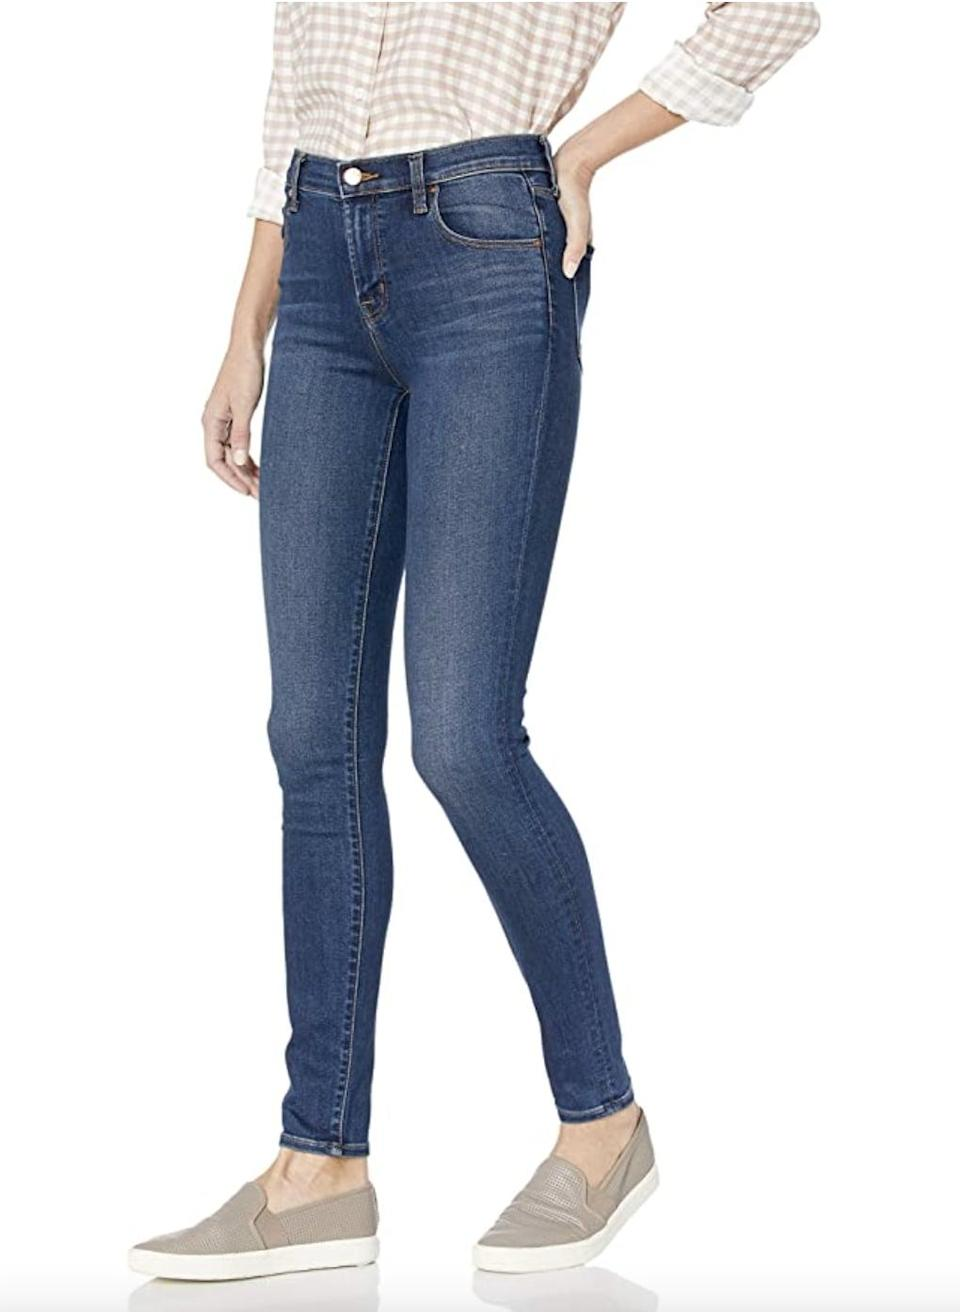 <p>You can wear these <span>J Brand 23110 Maria High Rise Skinny Jeans</span> ($57 - $219) to work or run errands. </p>